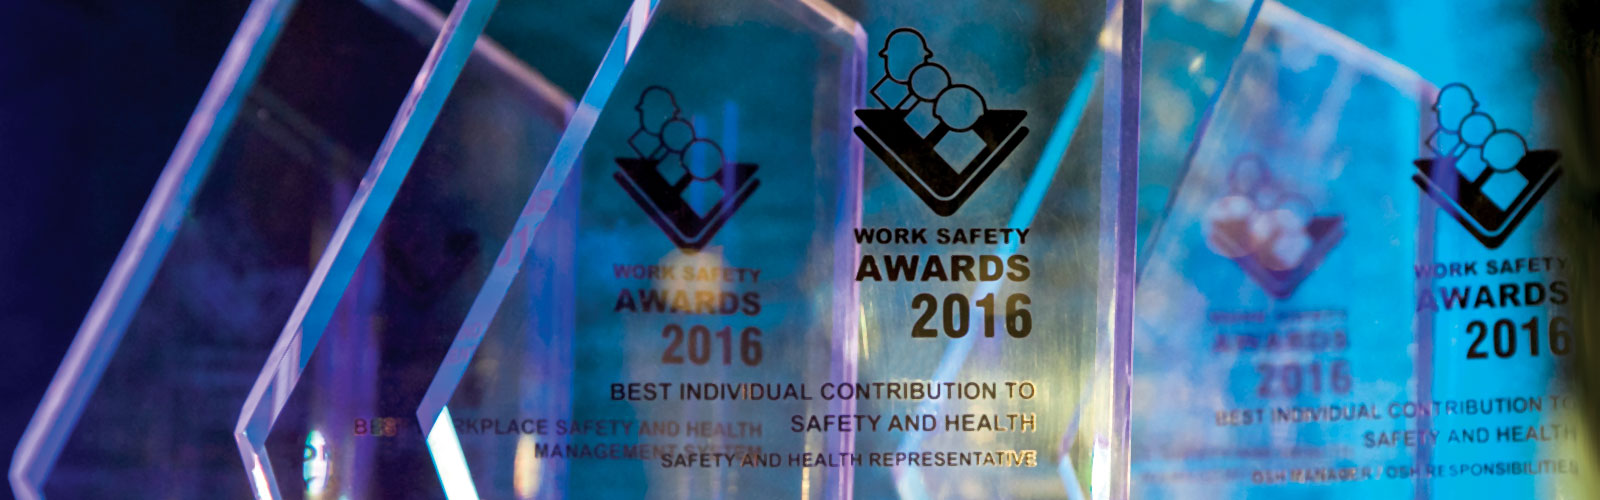 2016 Work Safety Awards WA winners